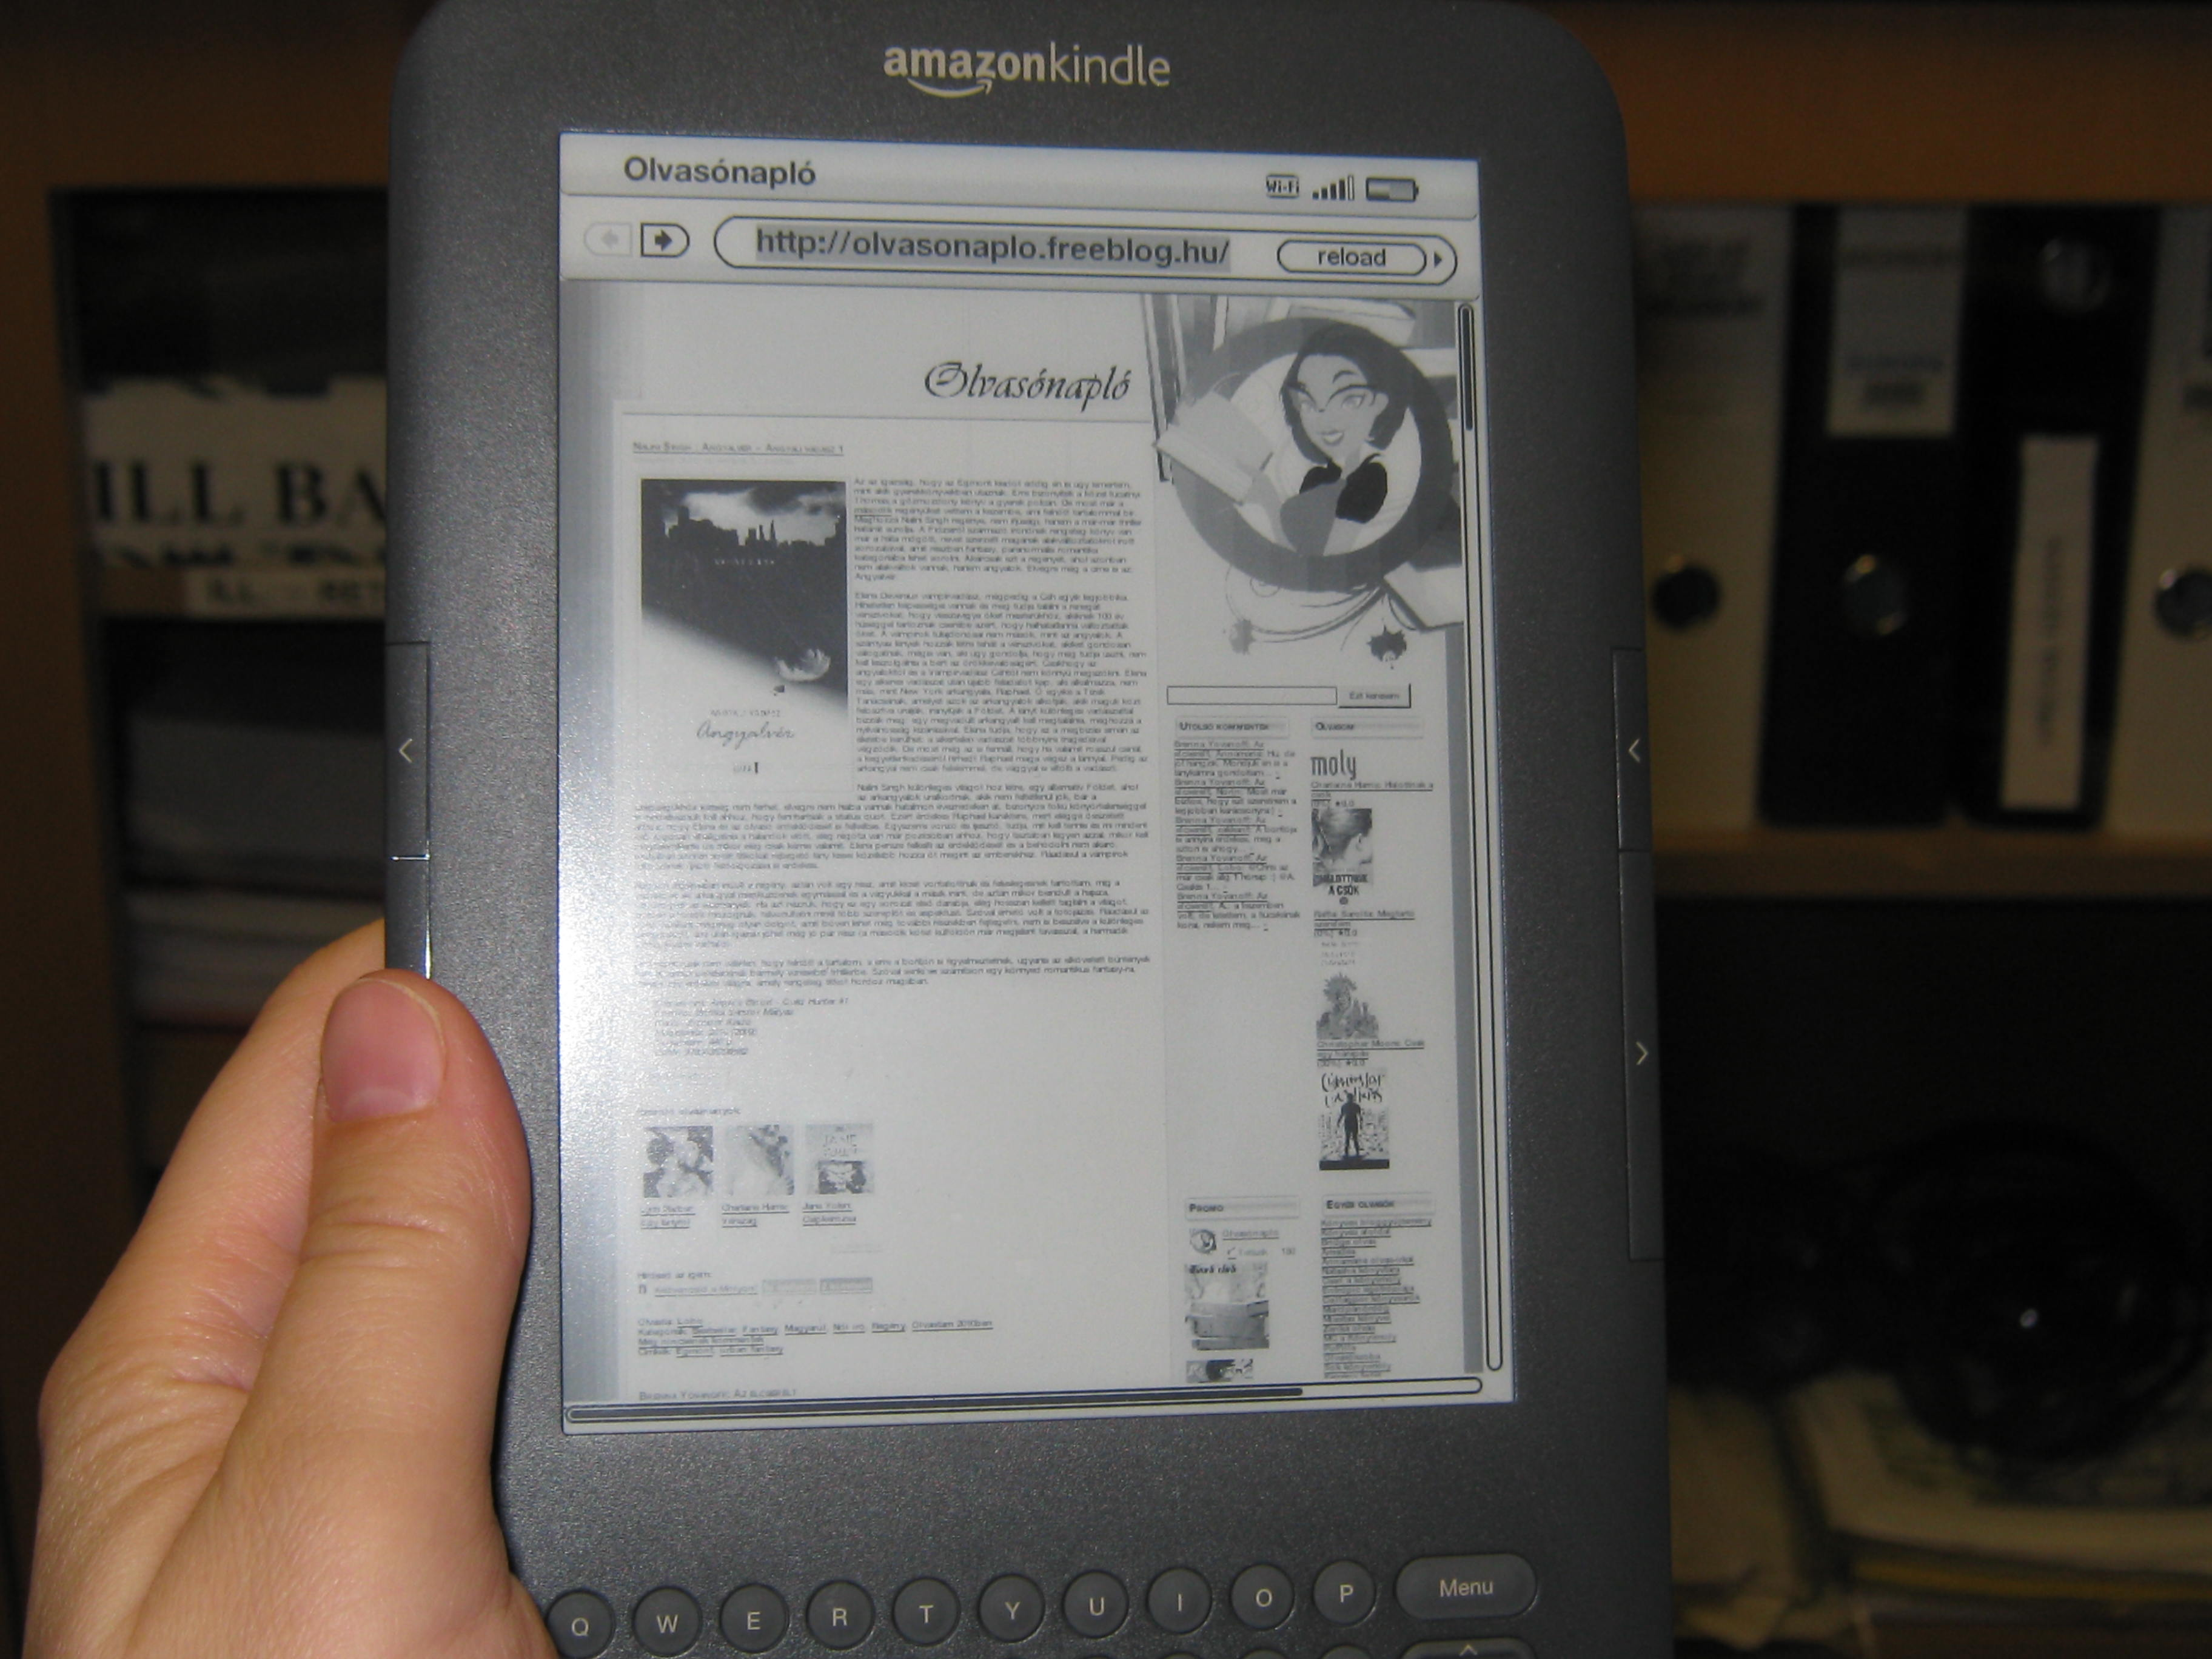 Olvasonapló on Kindle 3